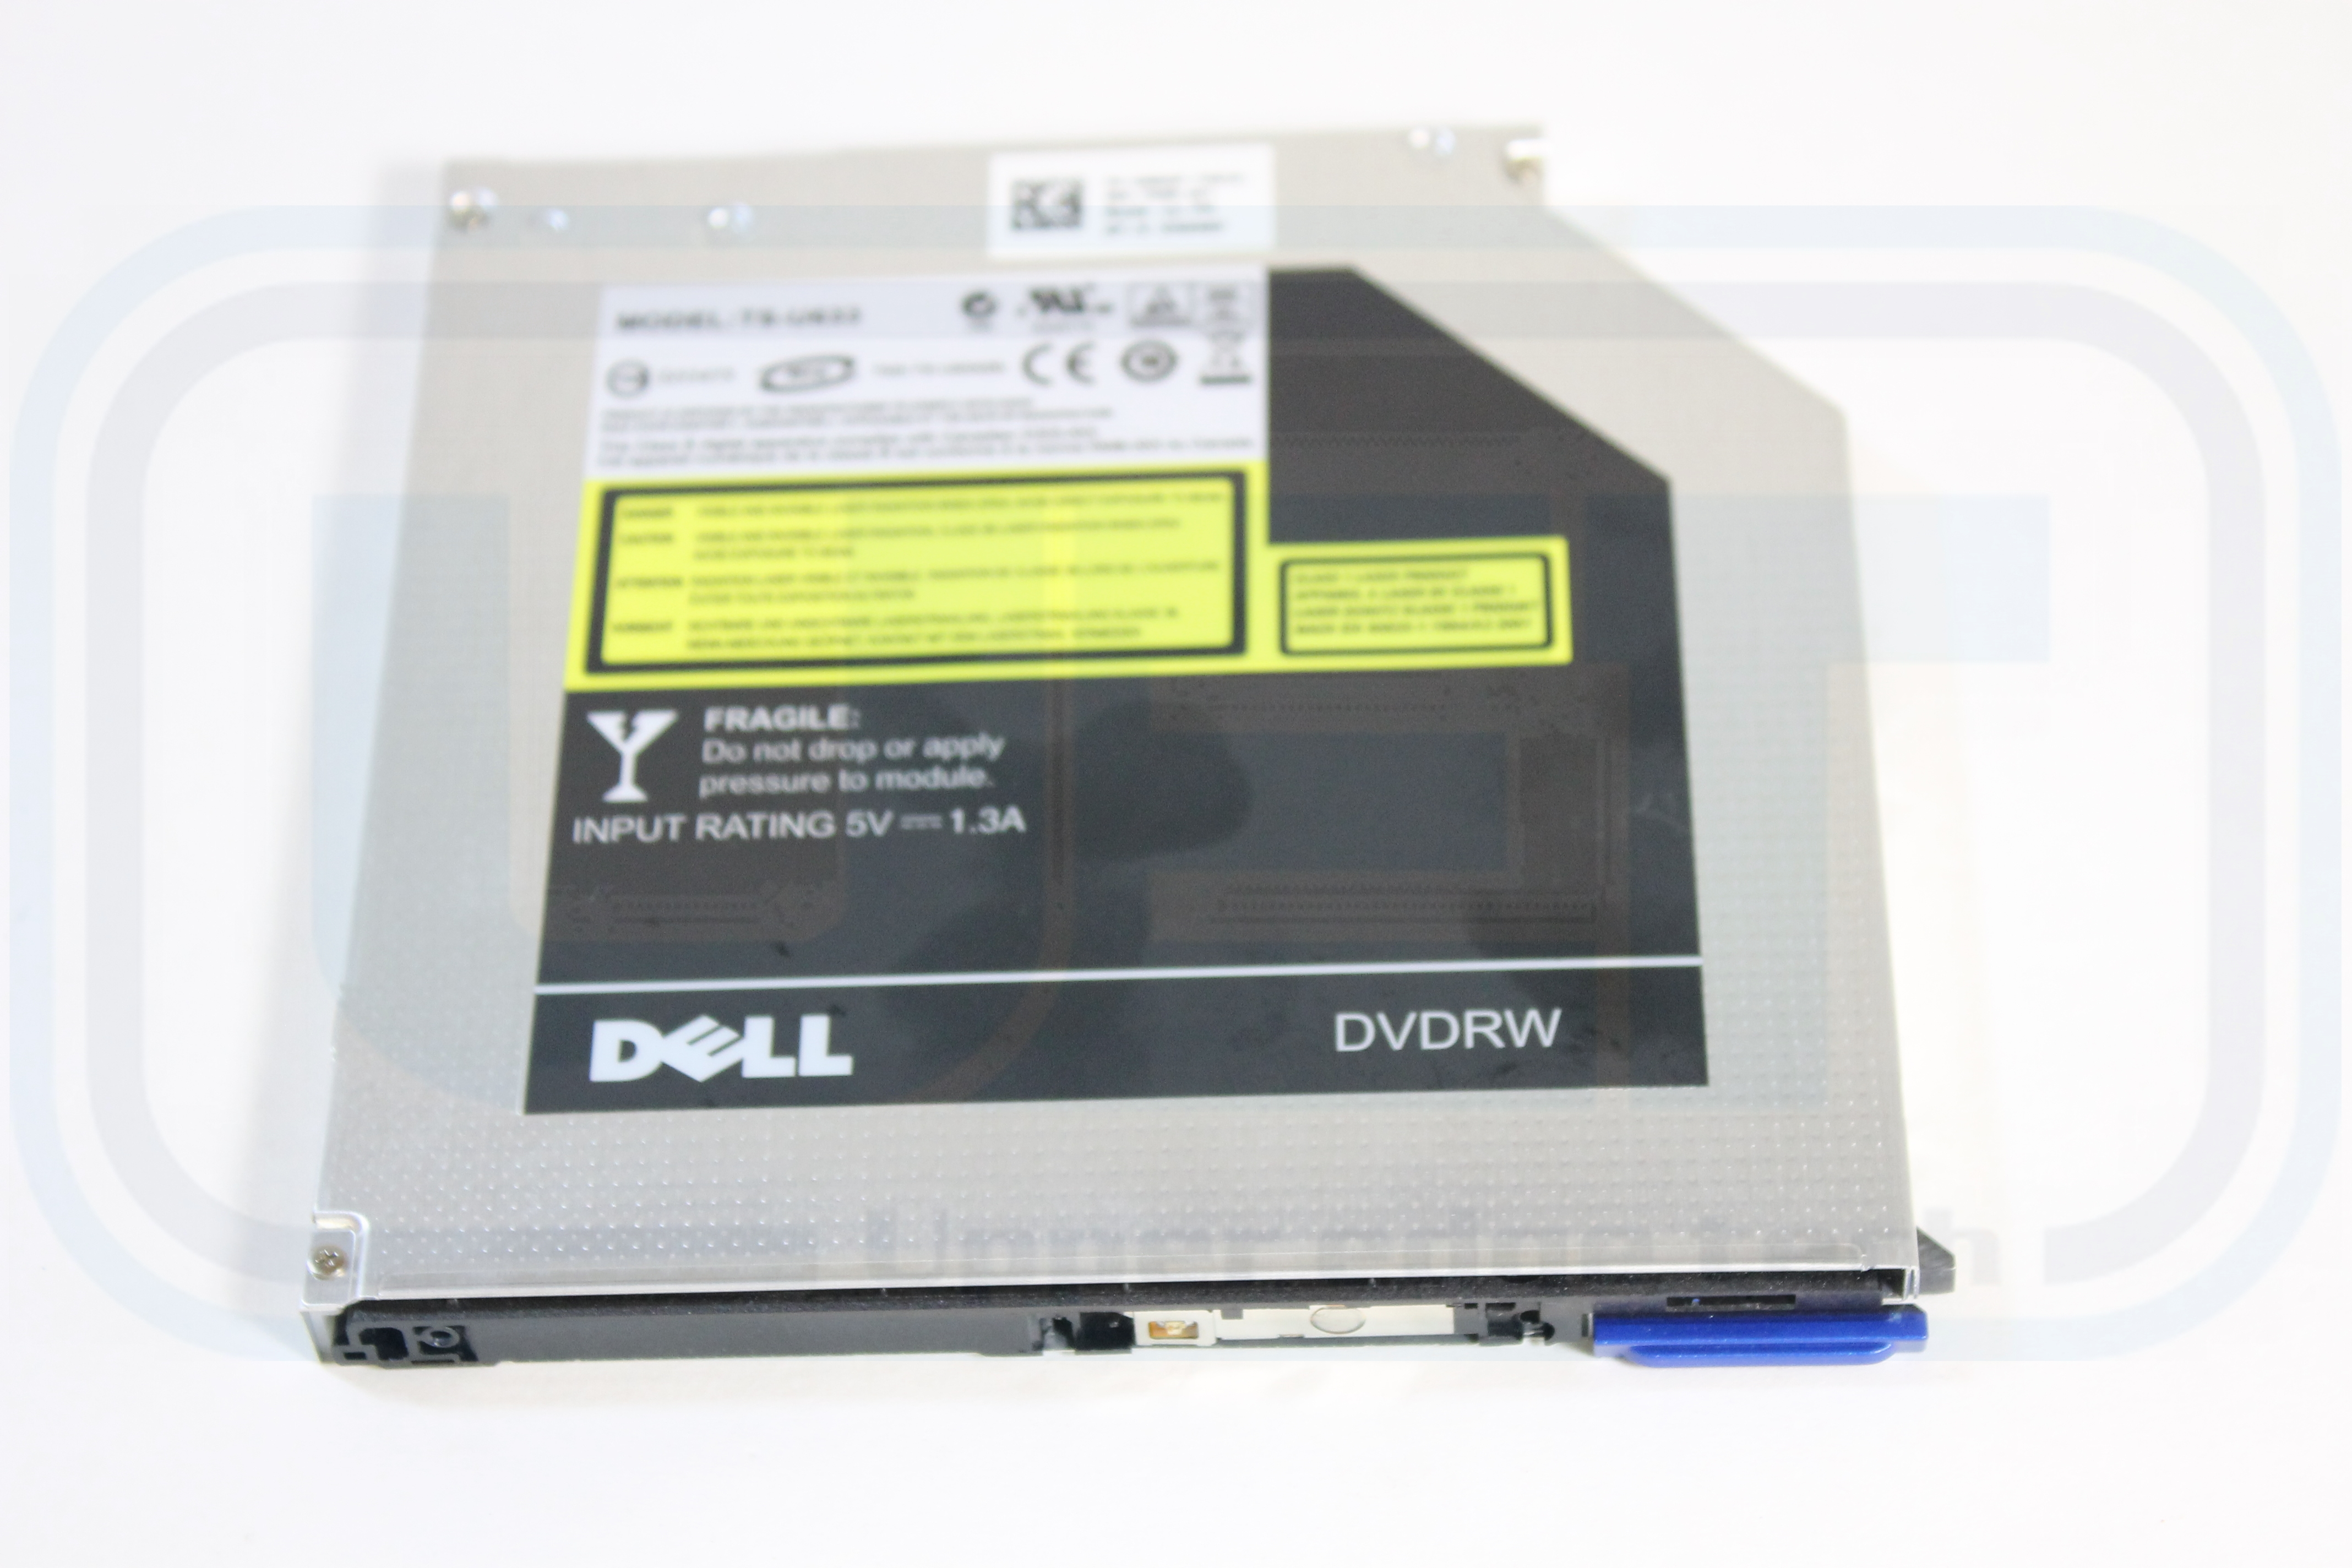 TSSTCORP DVD -RW TS-U633A resources firmwares and drivers